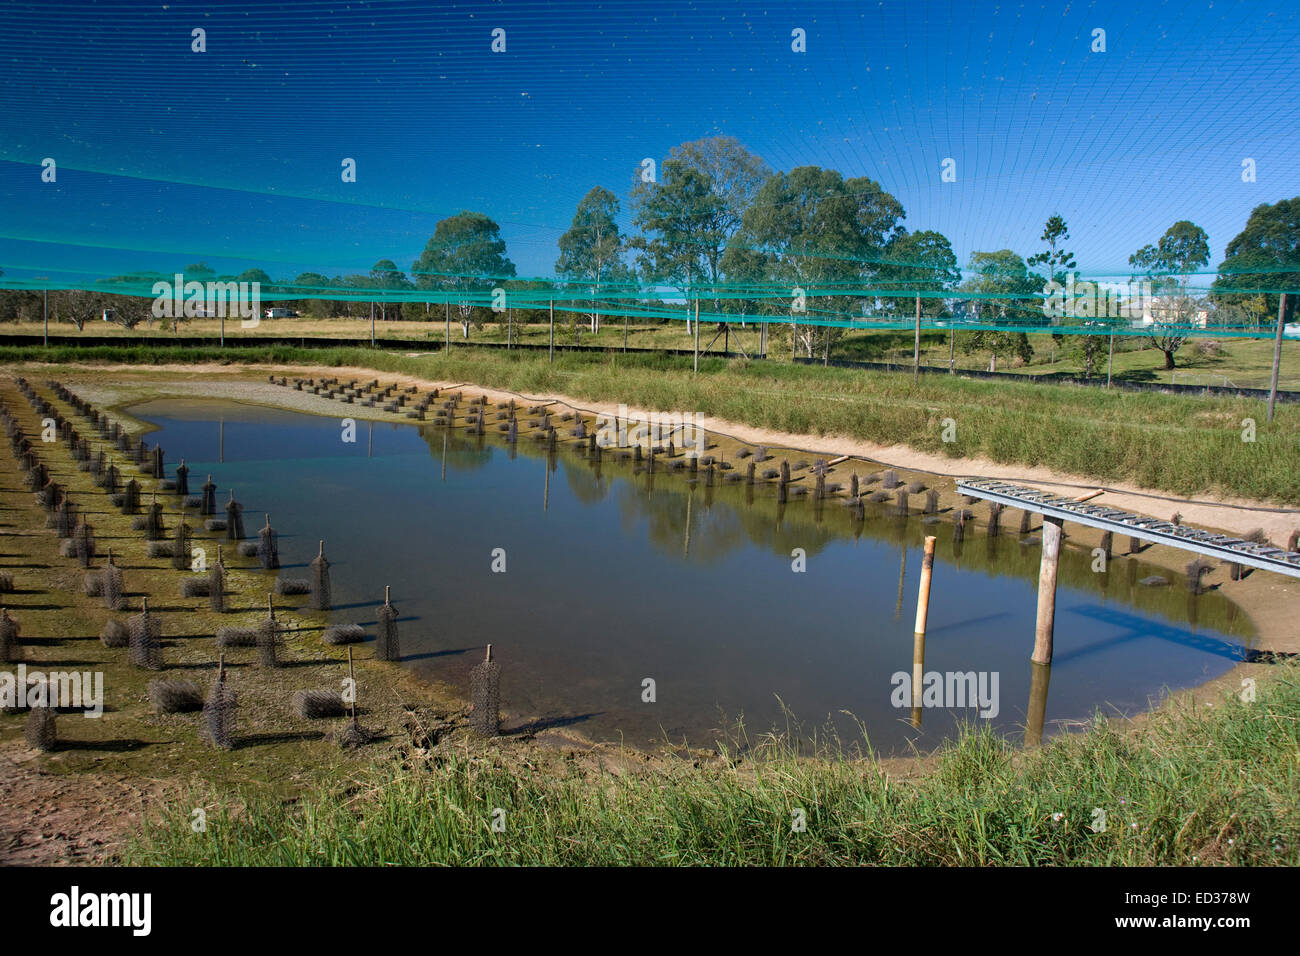 Large Outdoor Aquaculture Pond At Redclaw Crayfish Farm